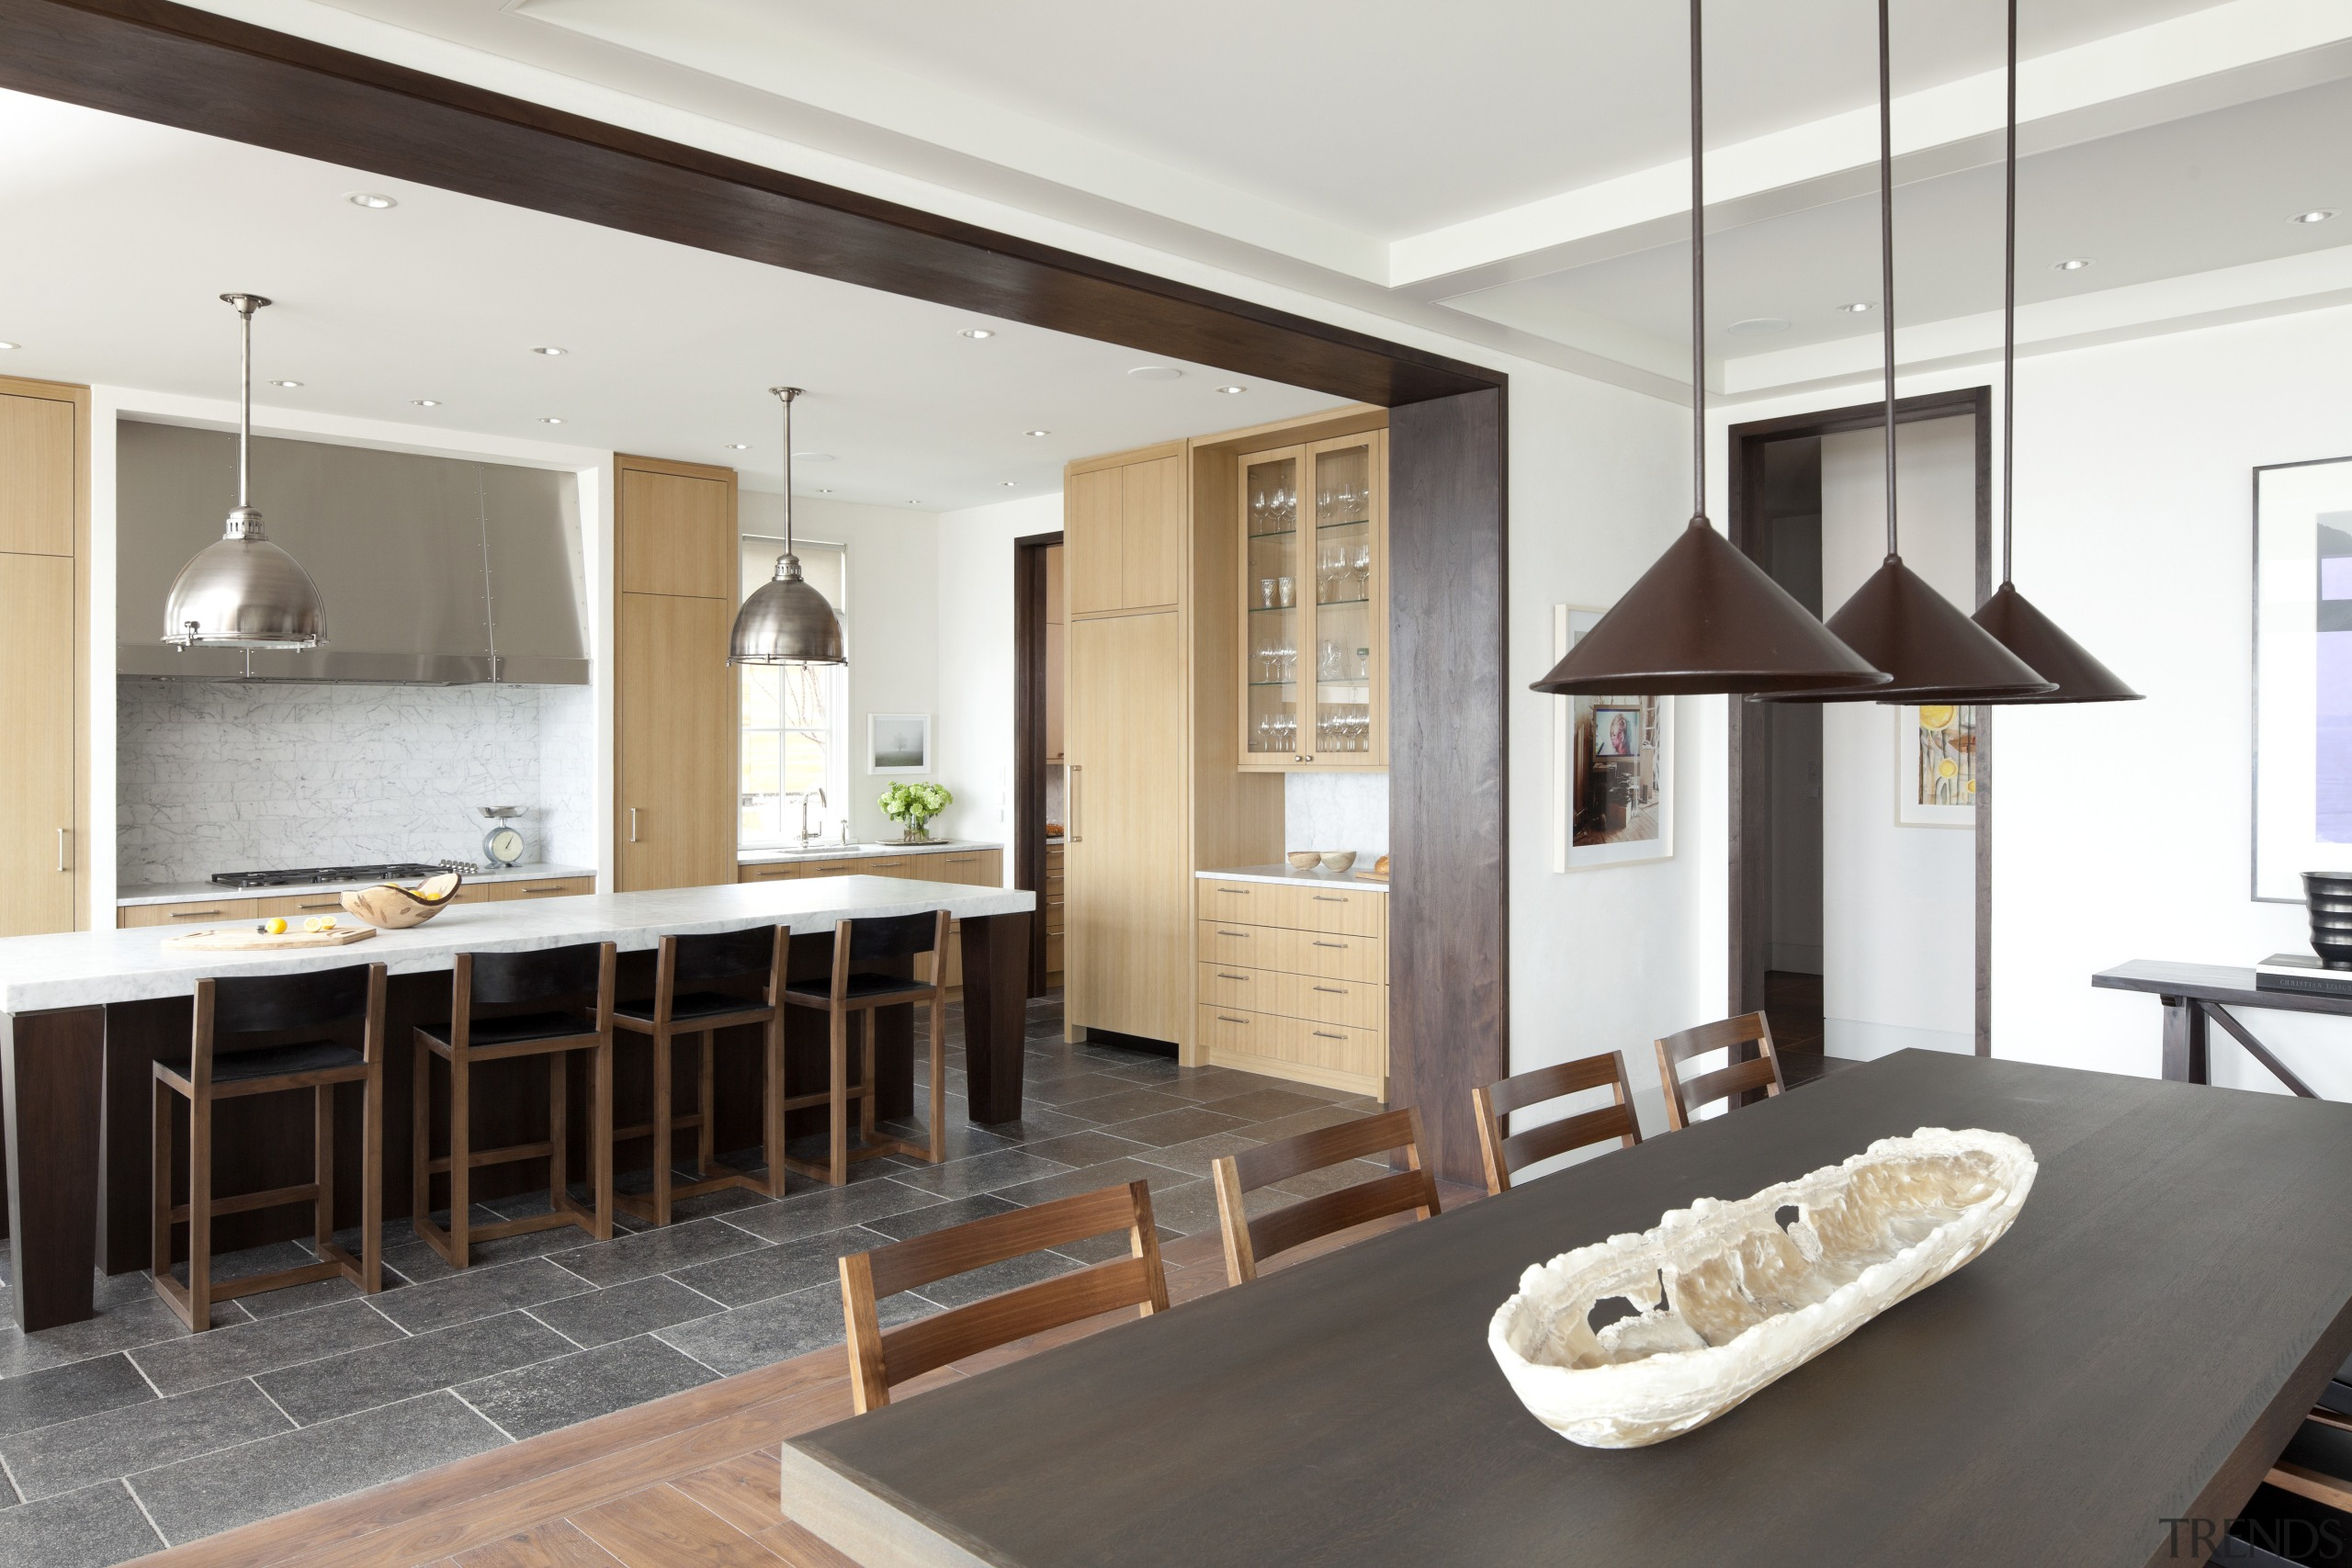 Traditional style new home - Traditional style new countertop, furniture, interior design, kitchen, real estate, table, white